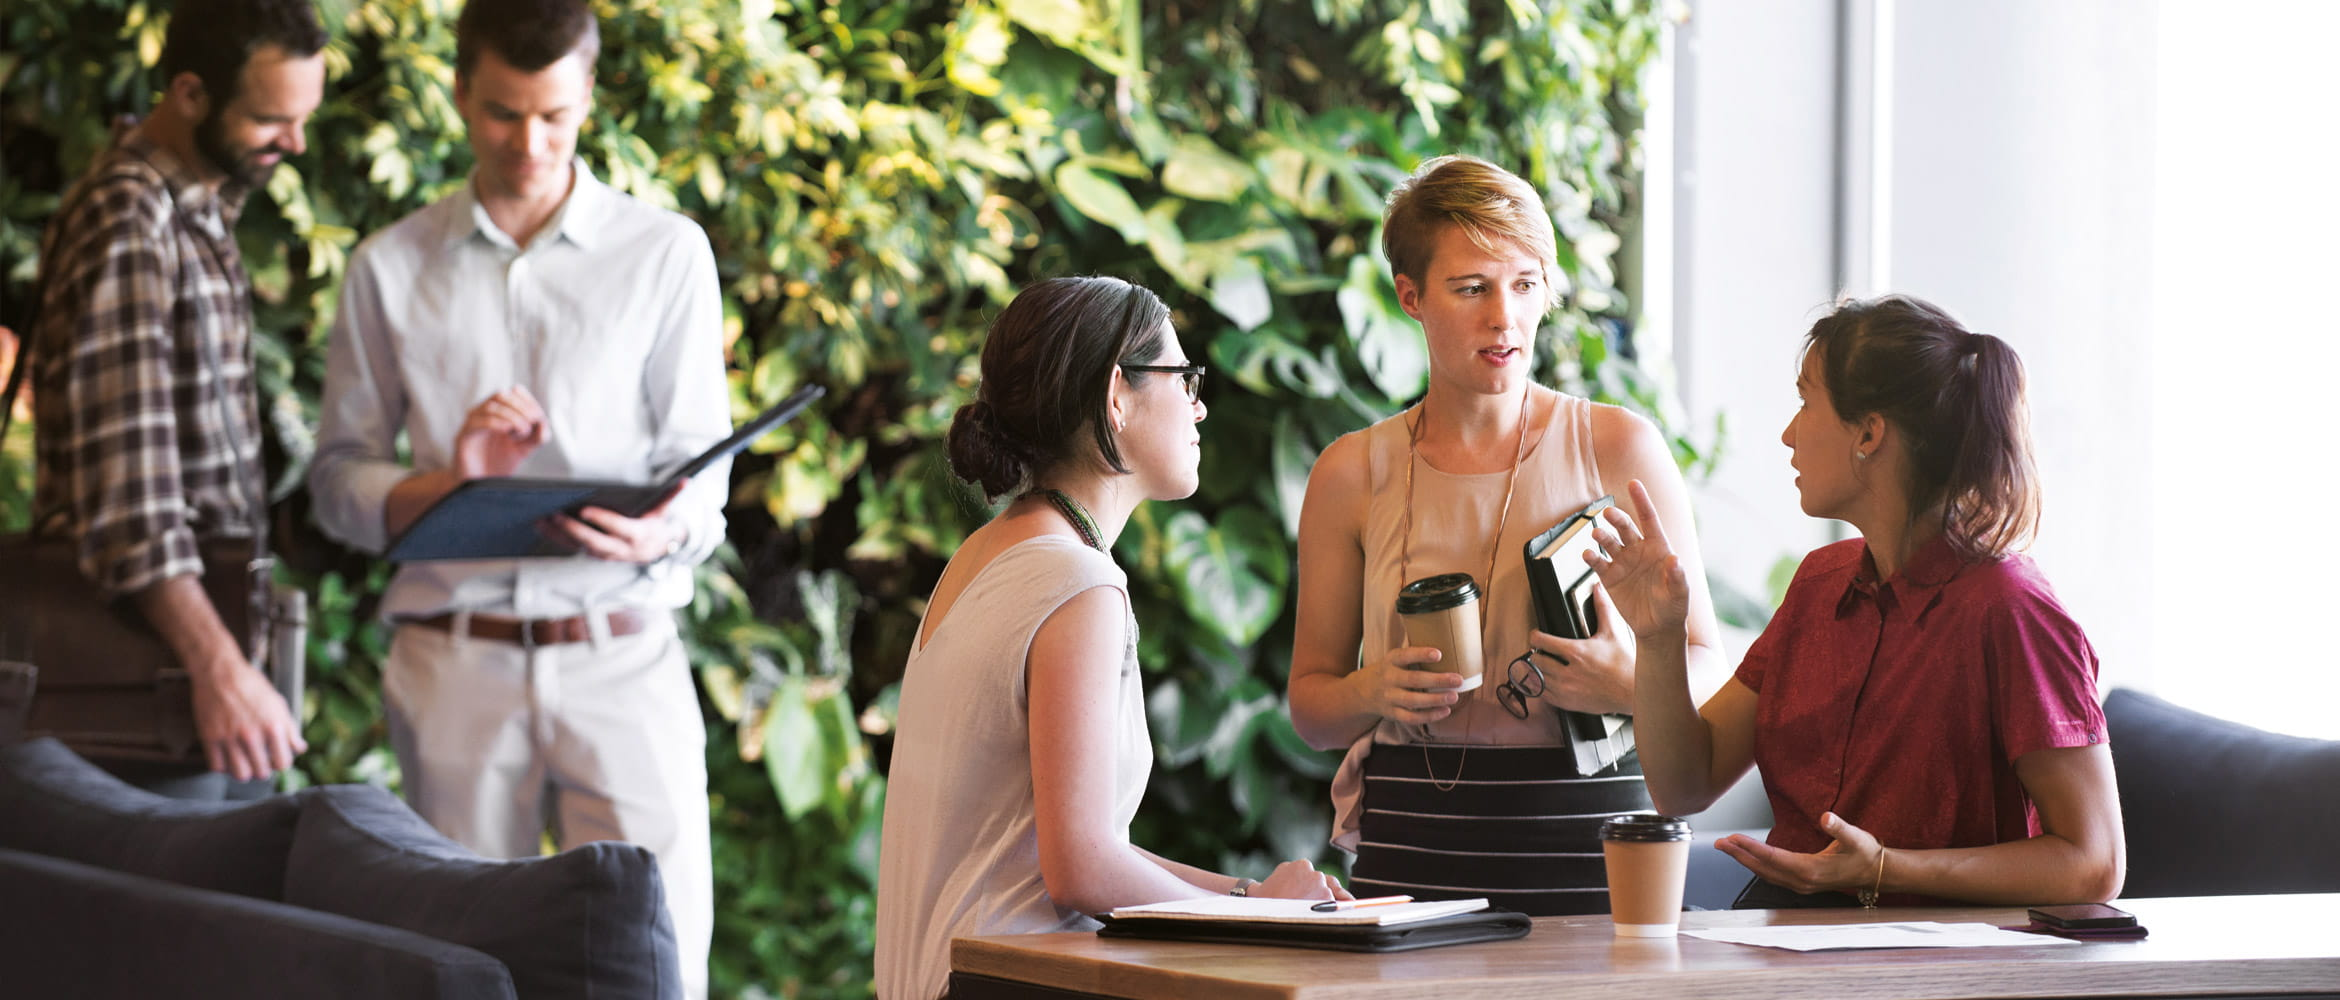 Two men and three women are holding an informal business meeting in the workplace of the future that features a prominent living green wall of plants within the office environment.